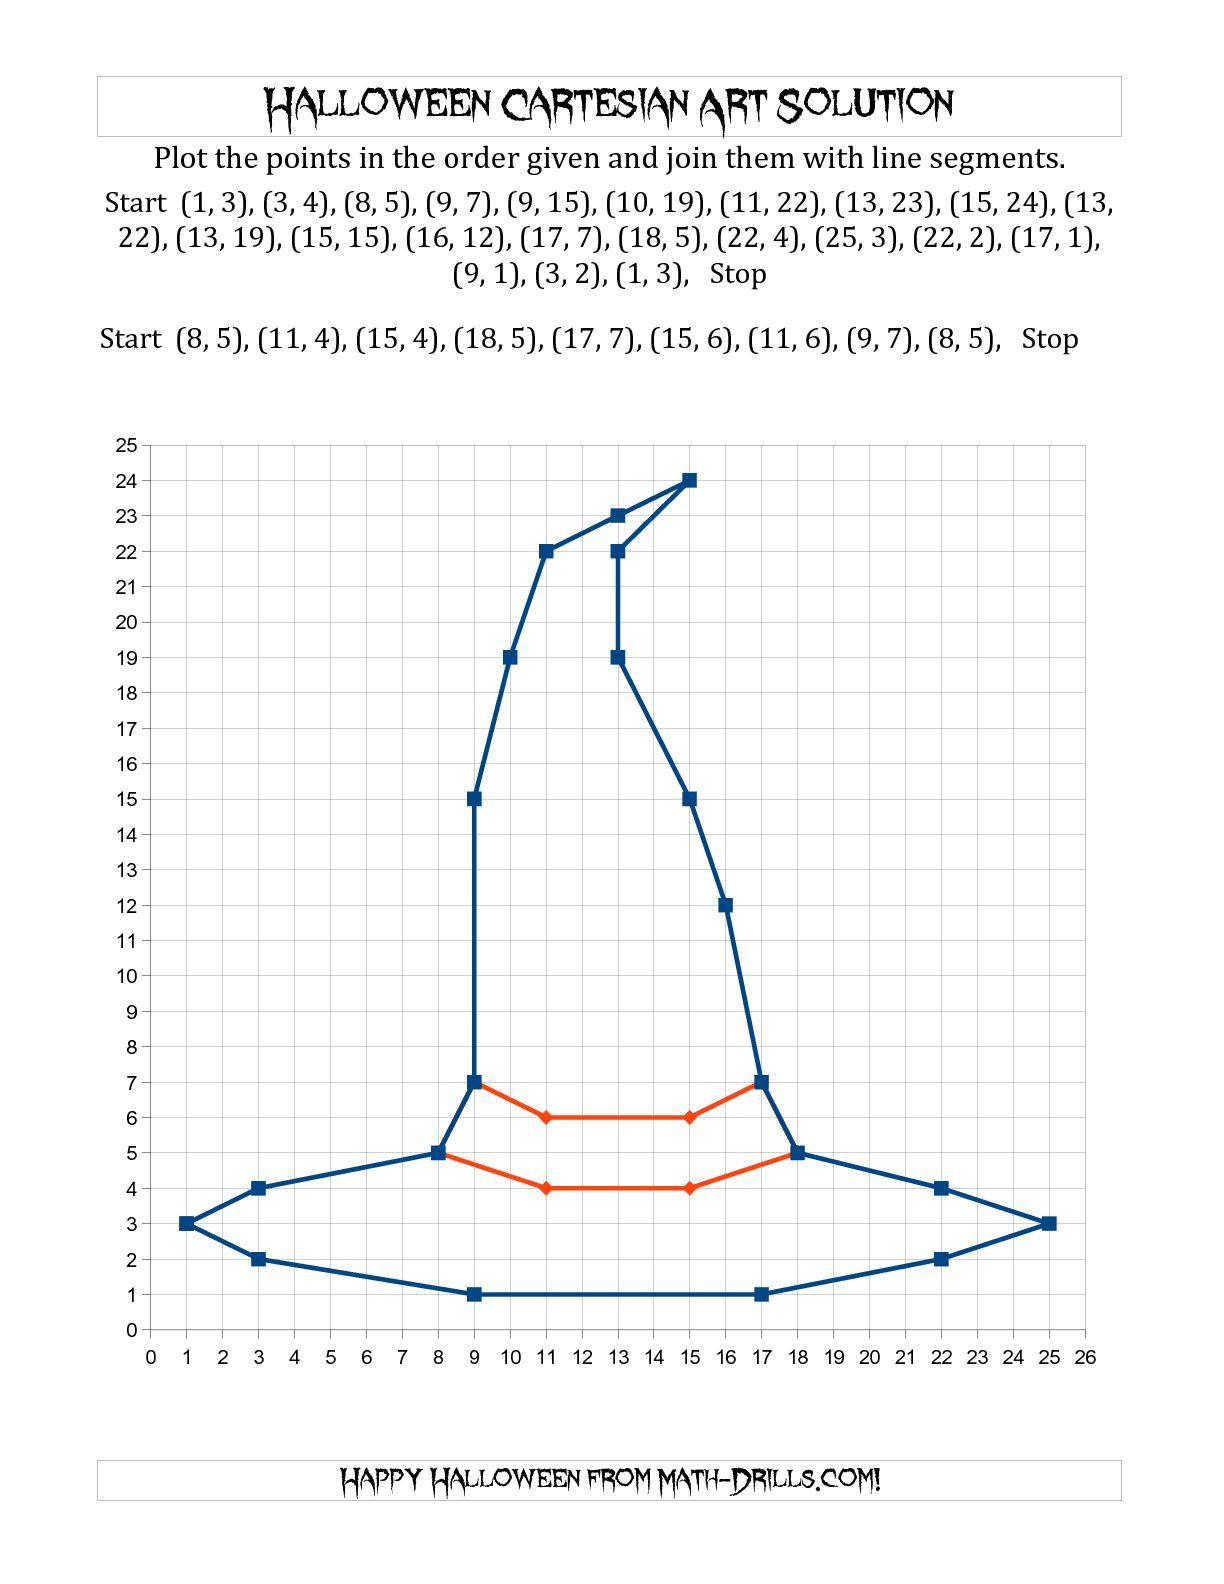 The Cartesian Art Halloween Witch Hat Math Worksheet From